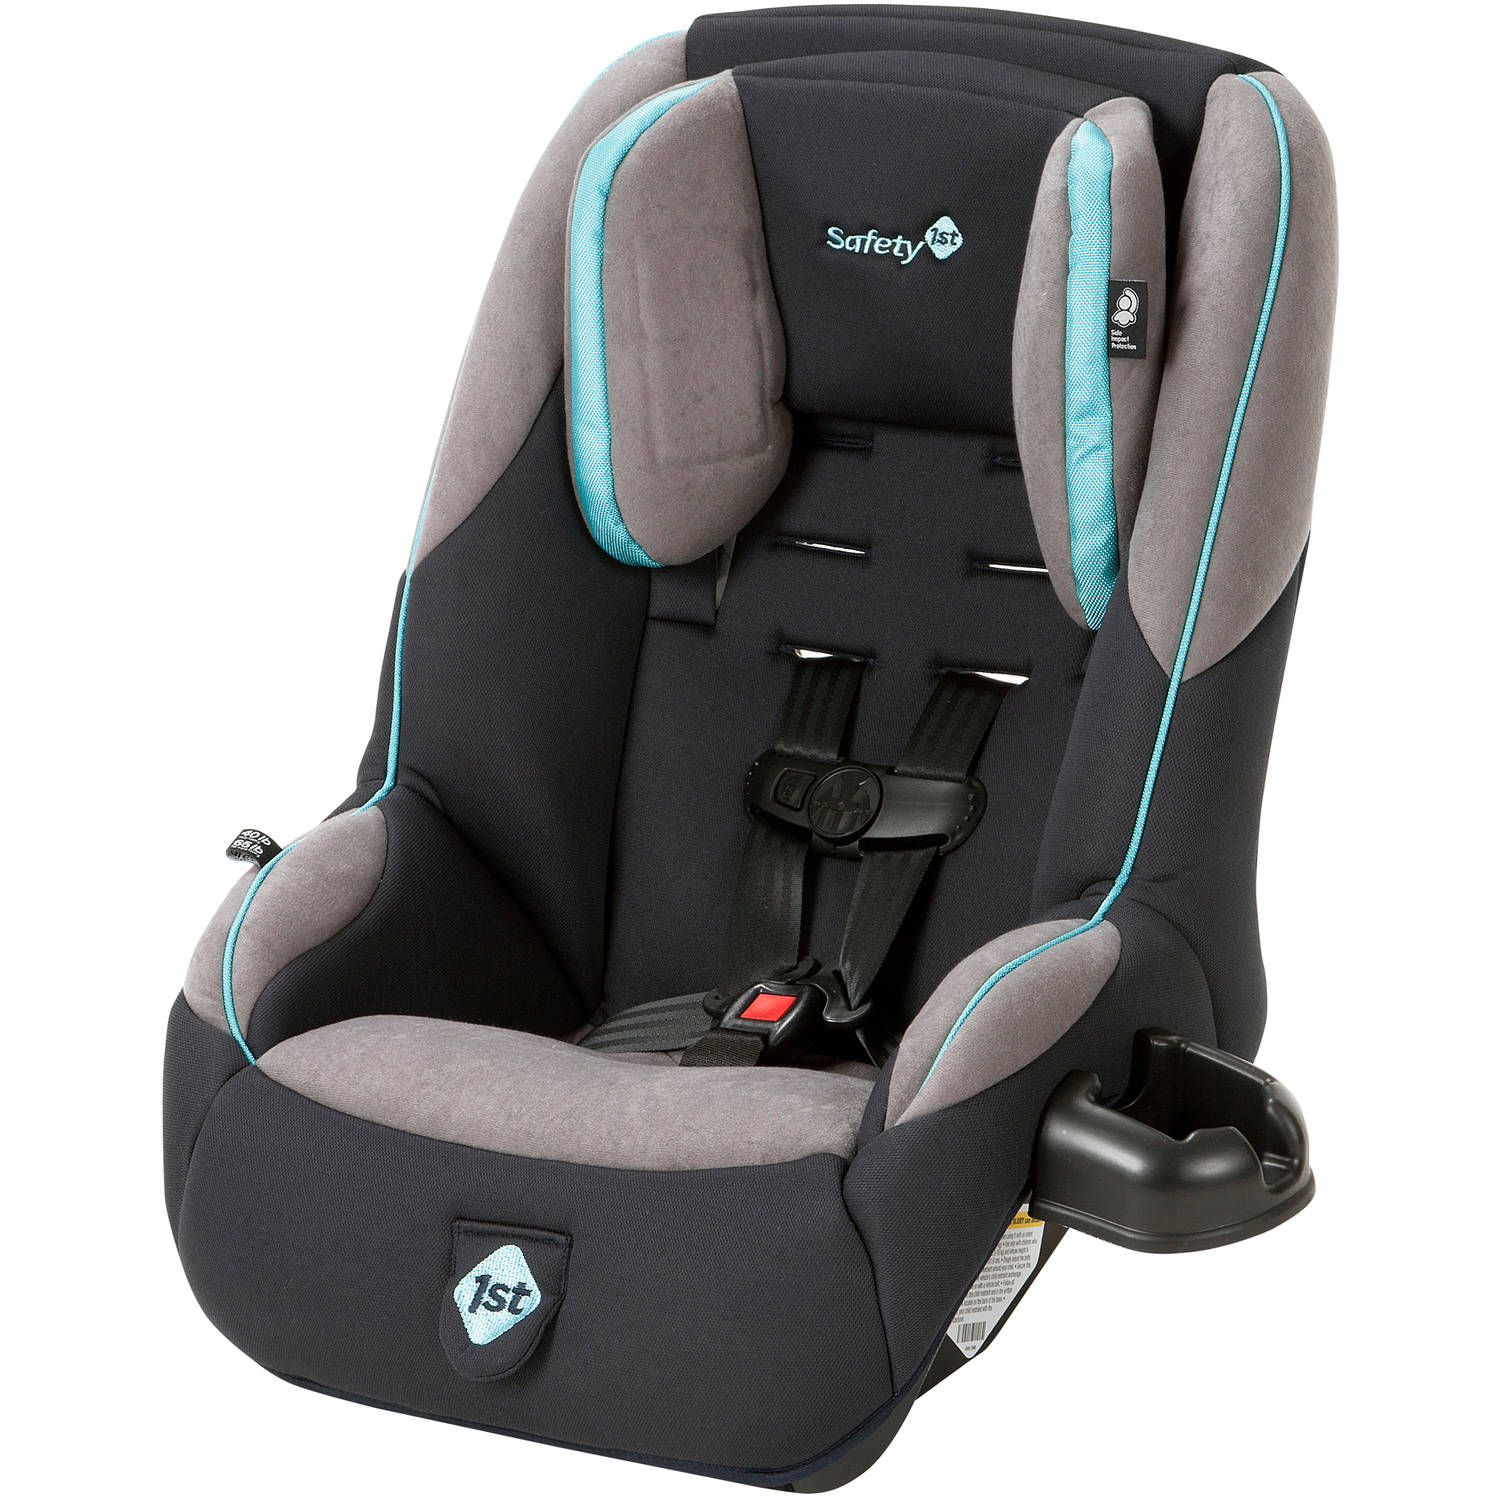 Graco Tranzitions 3-in-1 Harness Booster Car Seat, Basin - Walmart.com